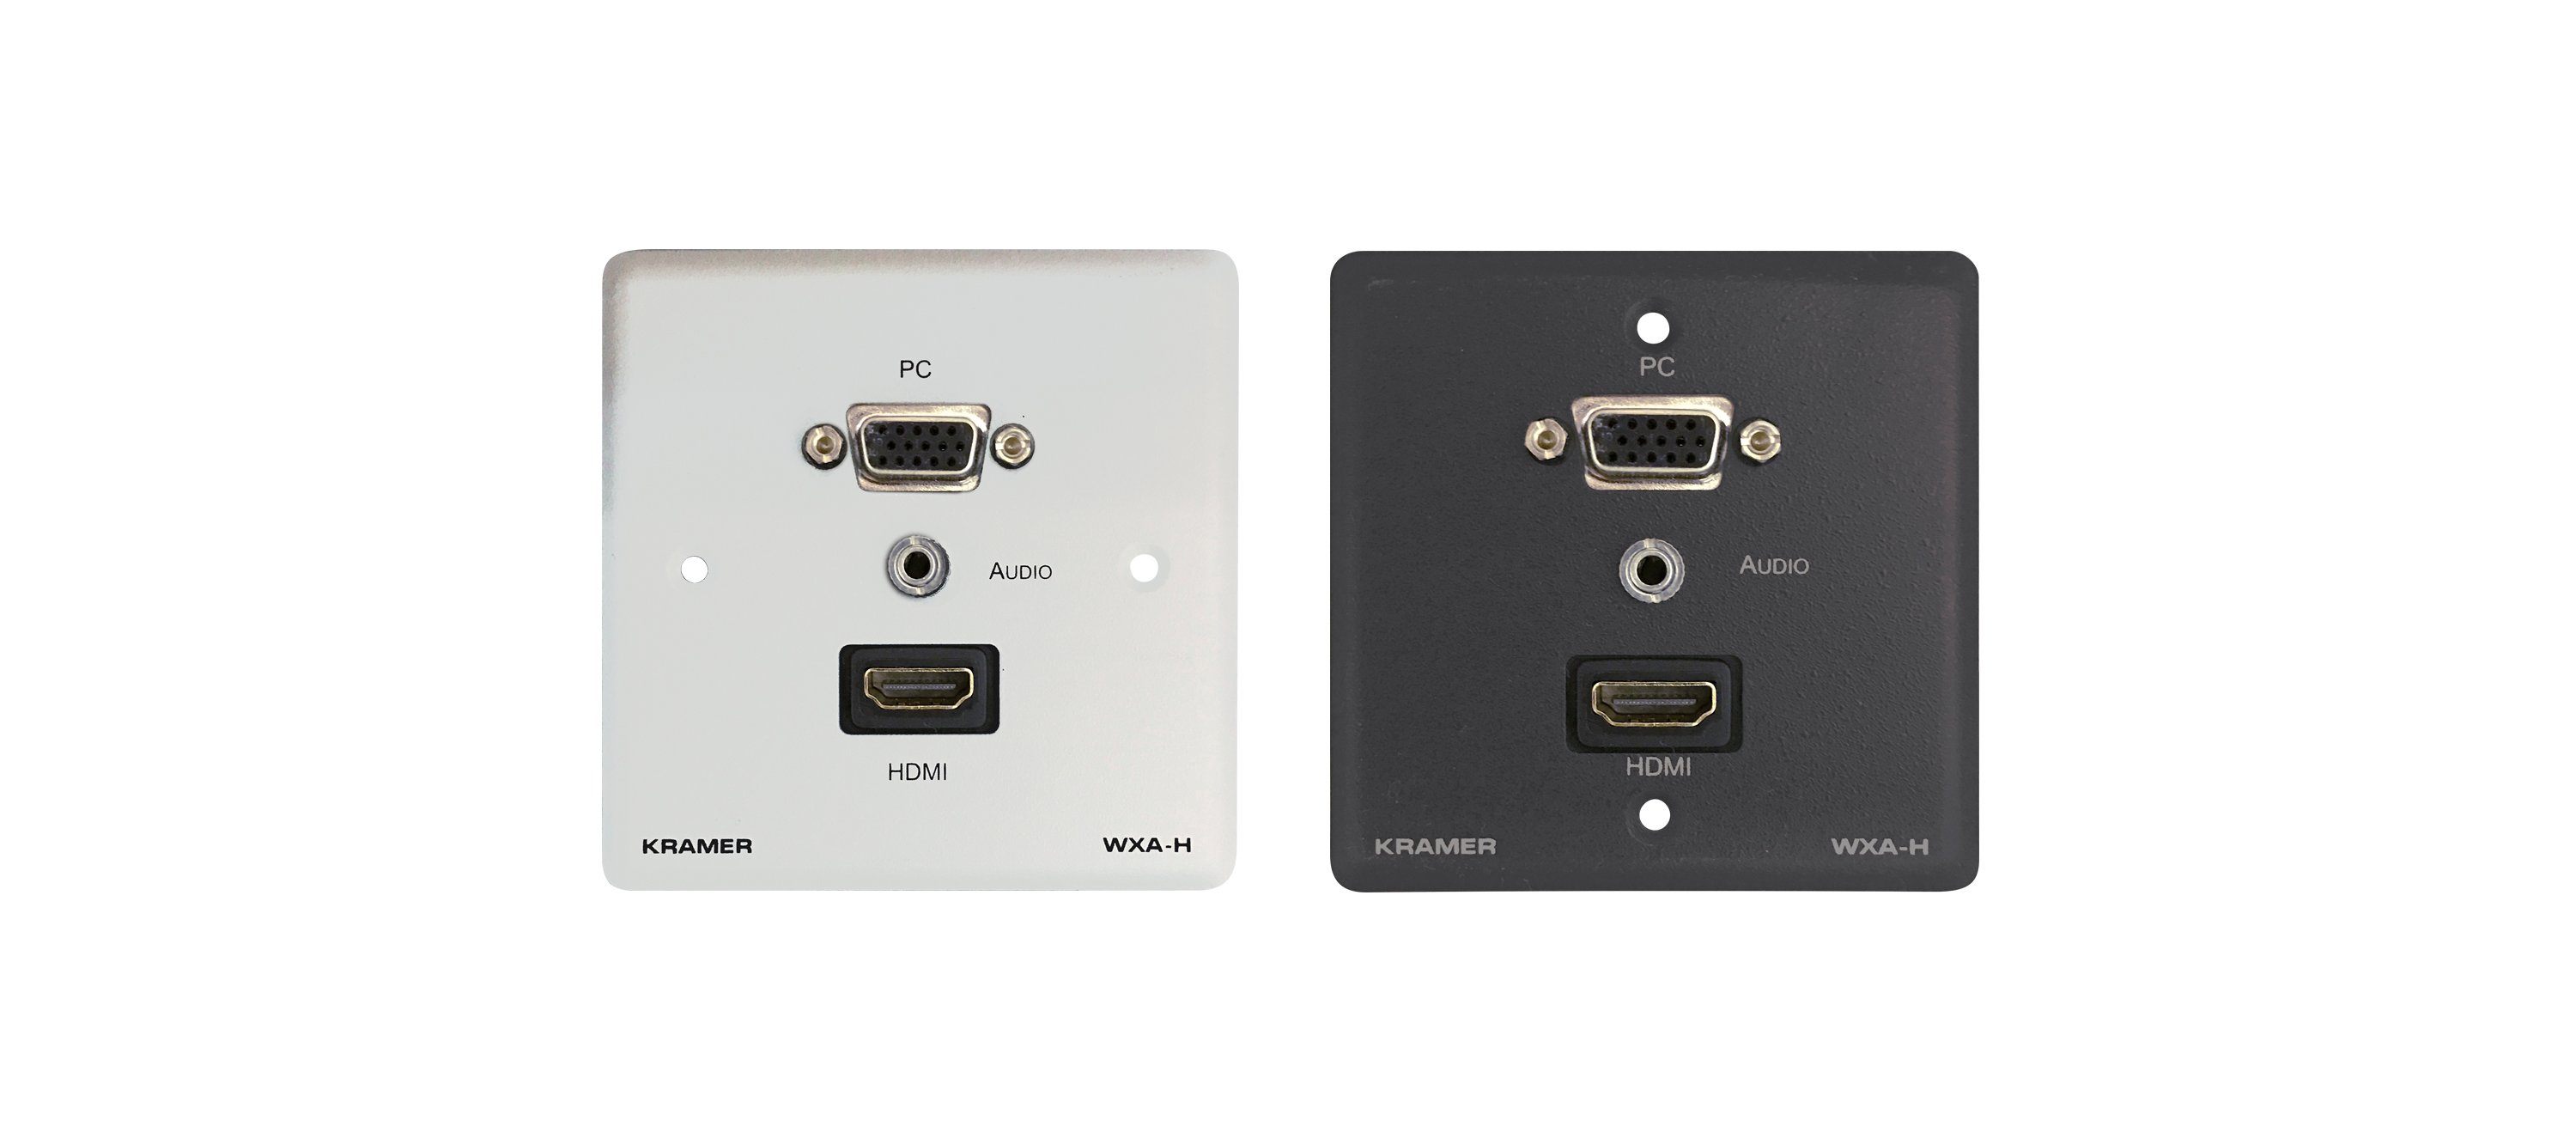 High Resolution Wall Plate VGA Video Signal /& Stereo Audio Extender Over Cat5